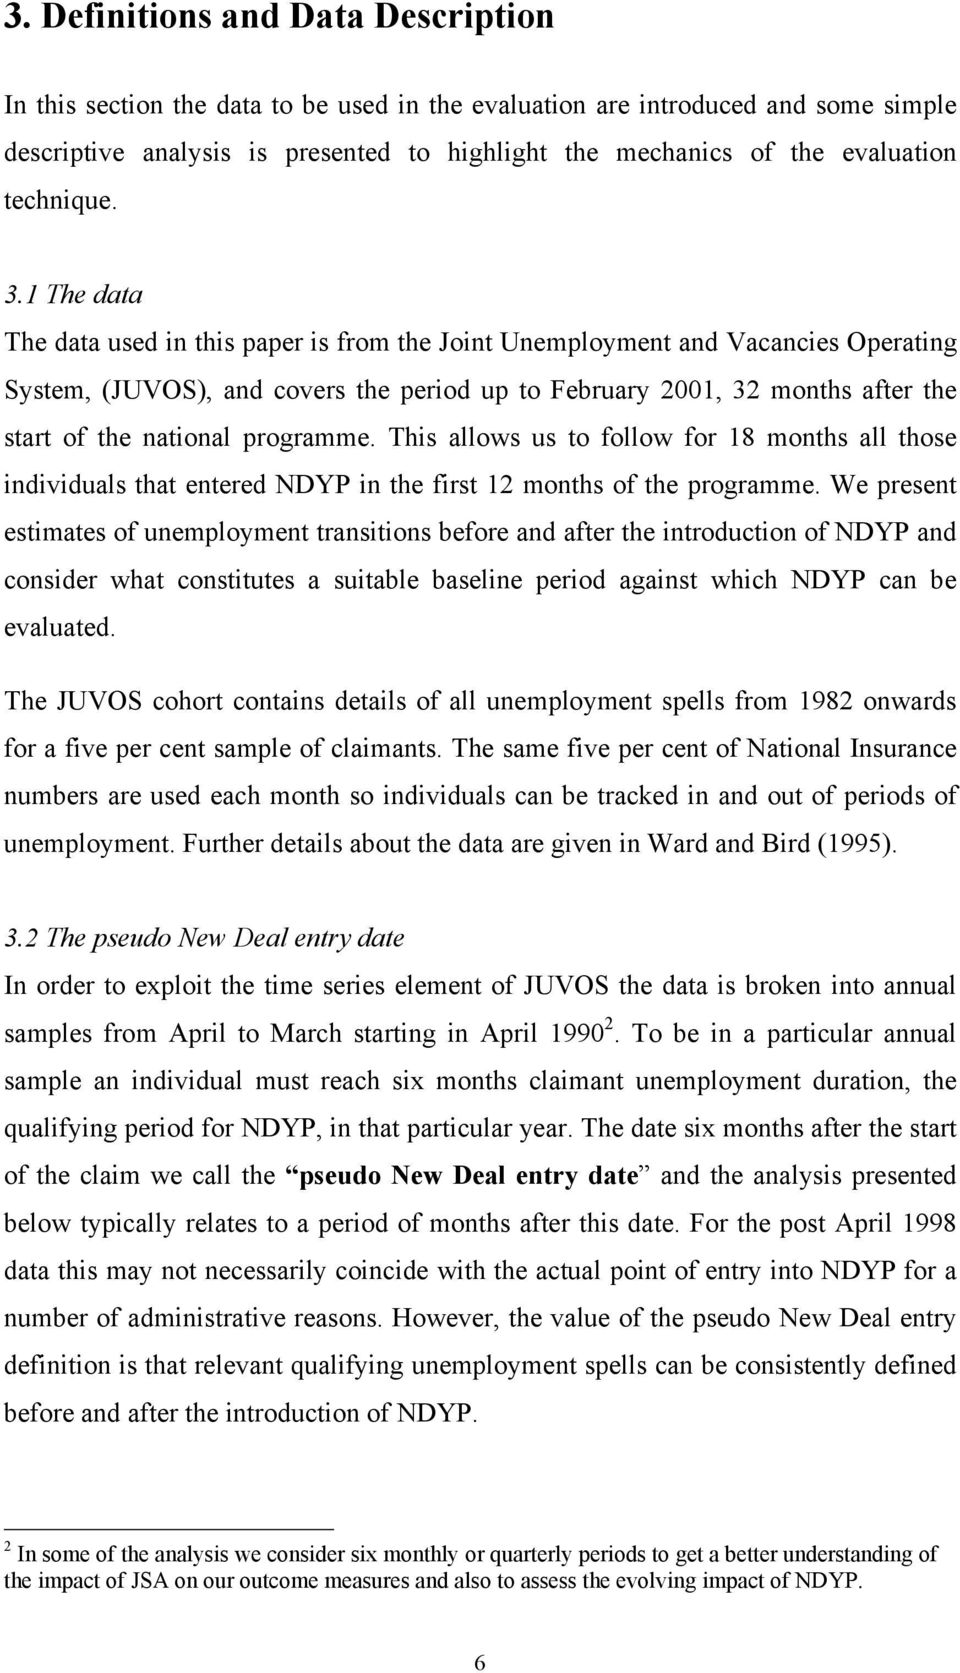 1 The data The data used in this paper is from the Joint Unemployment and Vacancies Operating System, (JUVOS), and covers the period up to February 2001, 32 months after the start of the national